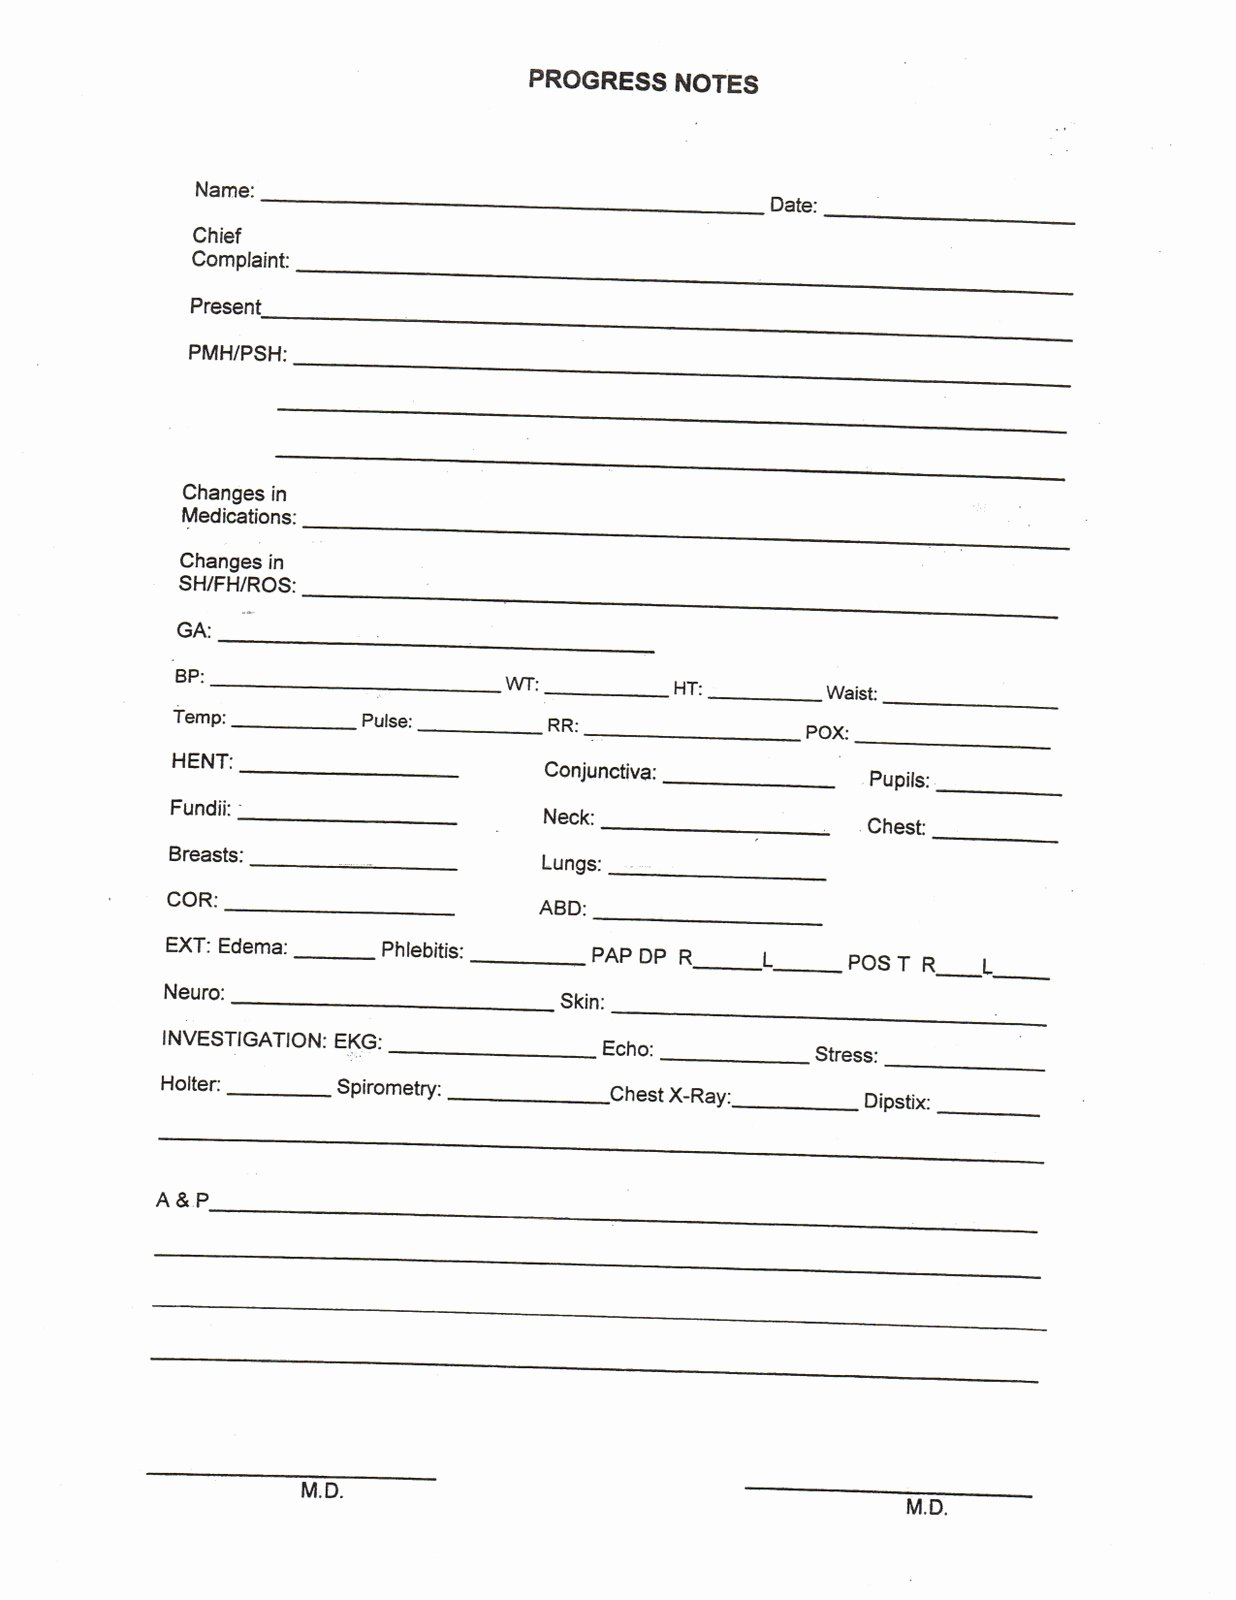 Medical Progress Note Template Inspirational 9 Best Of Medical Progress Notes forms Medical